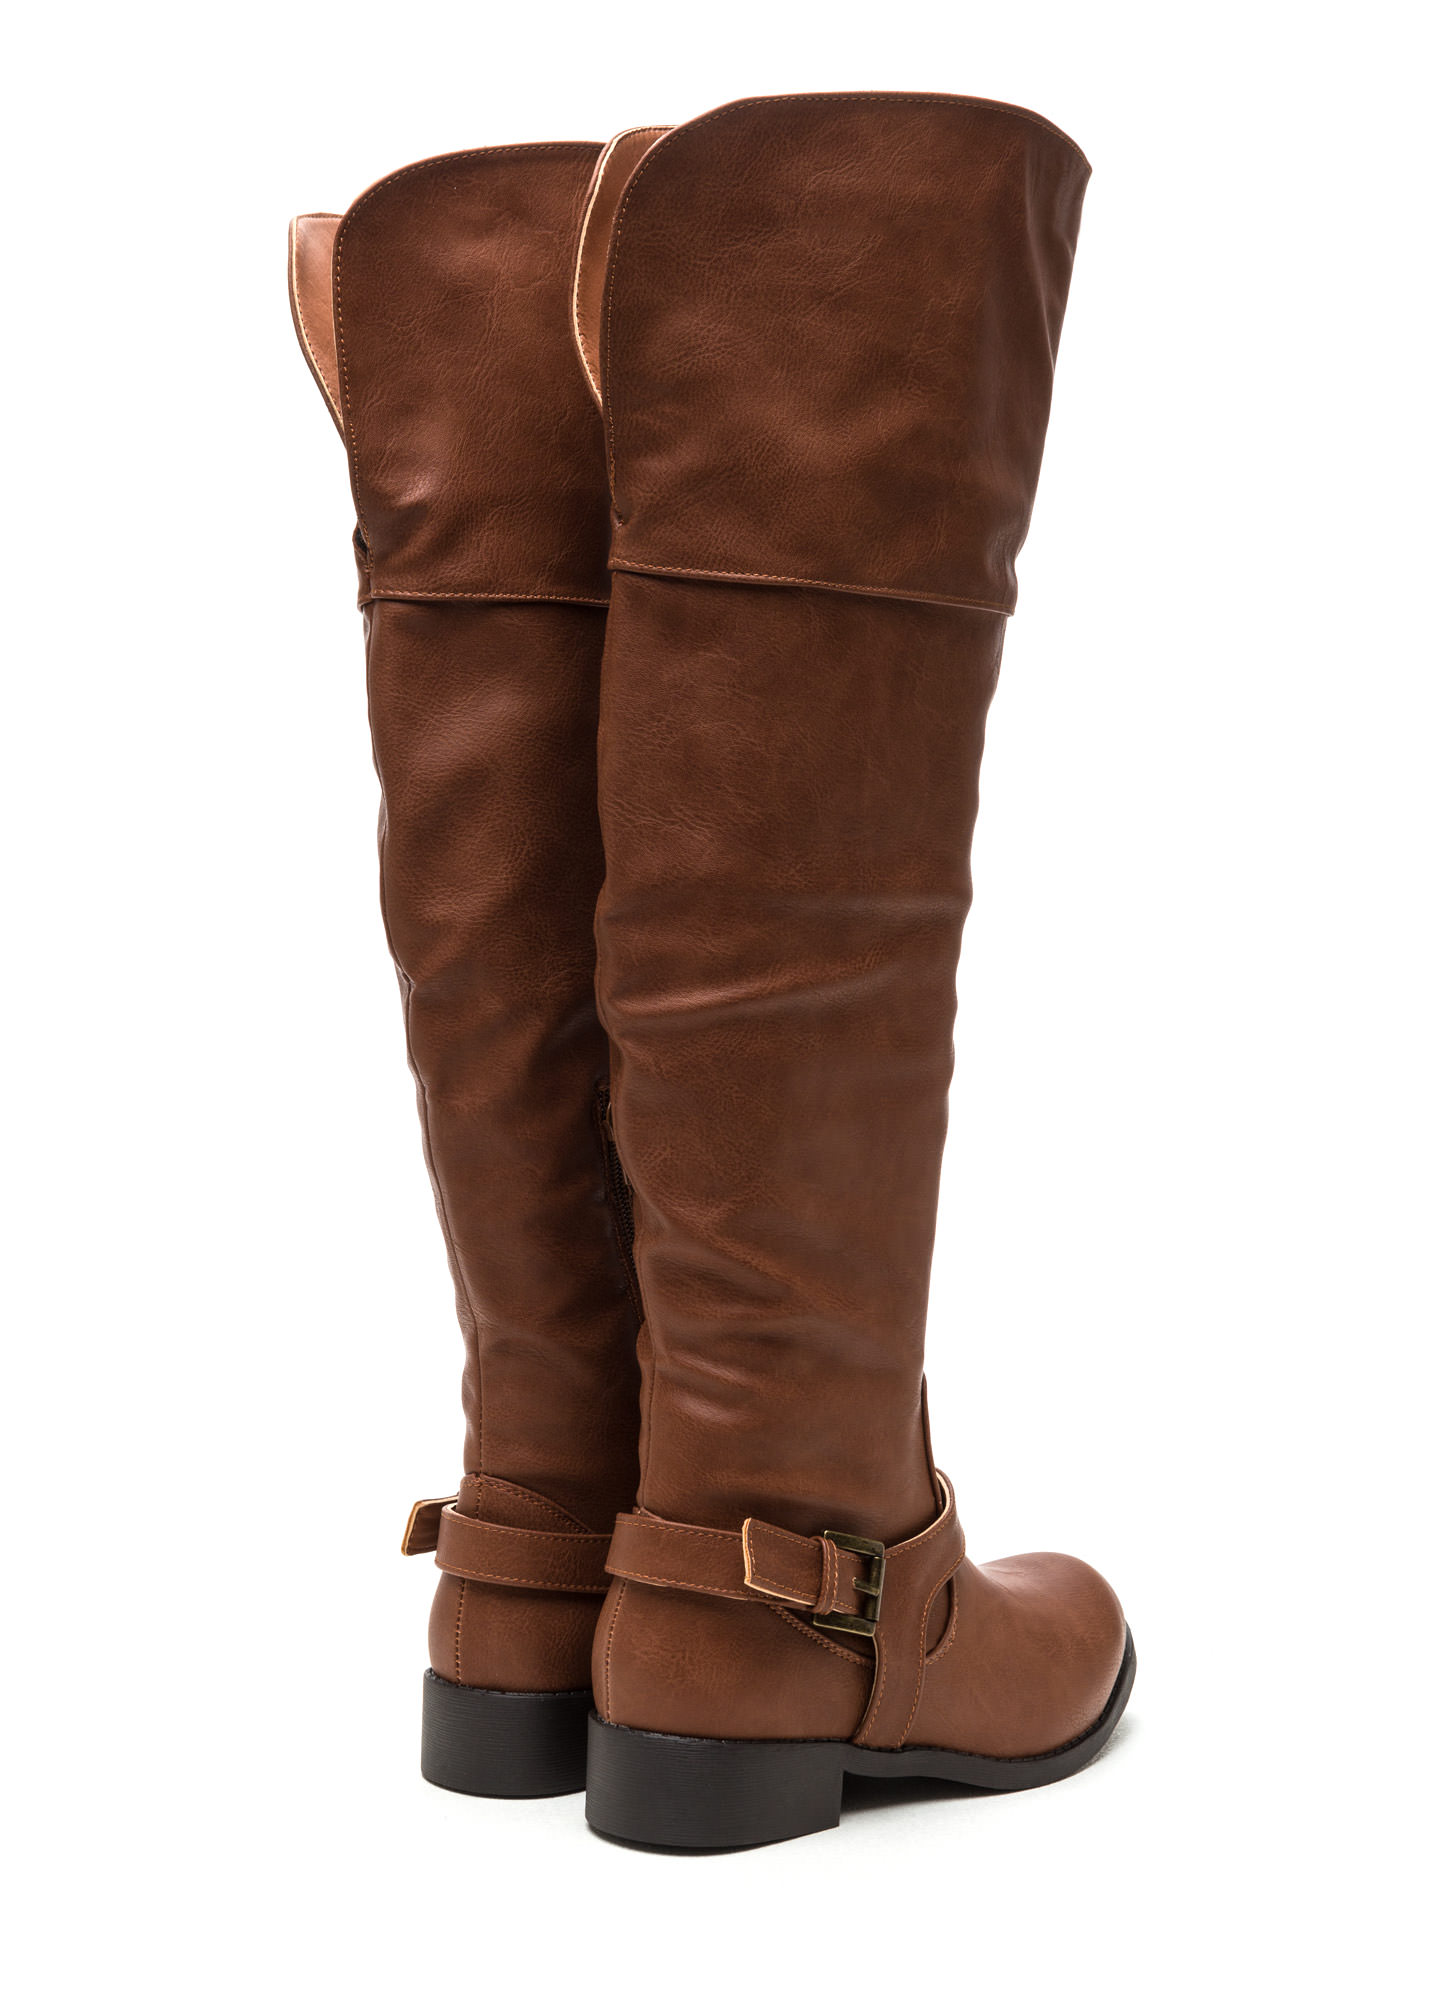 Harness Your Talents Thigh-High Boots COGNAC